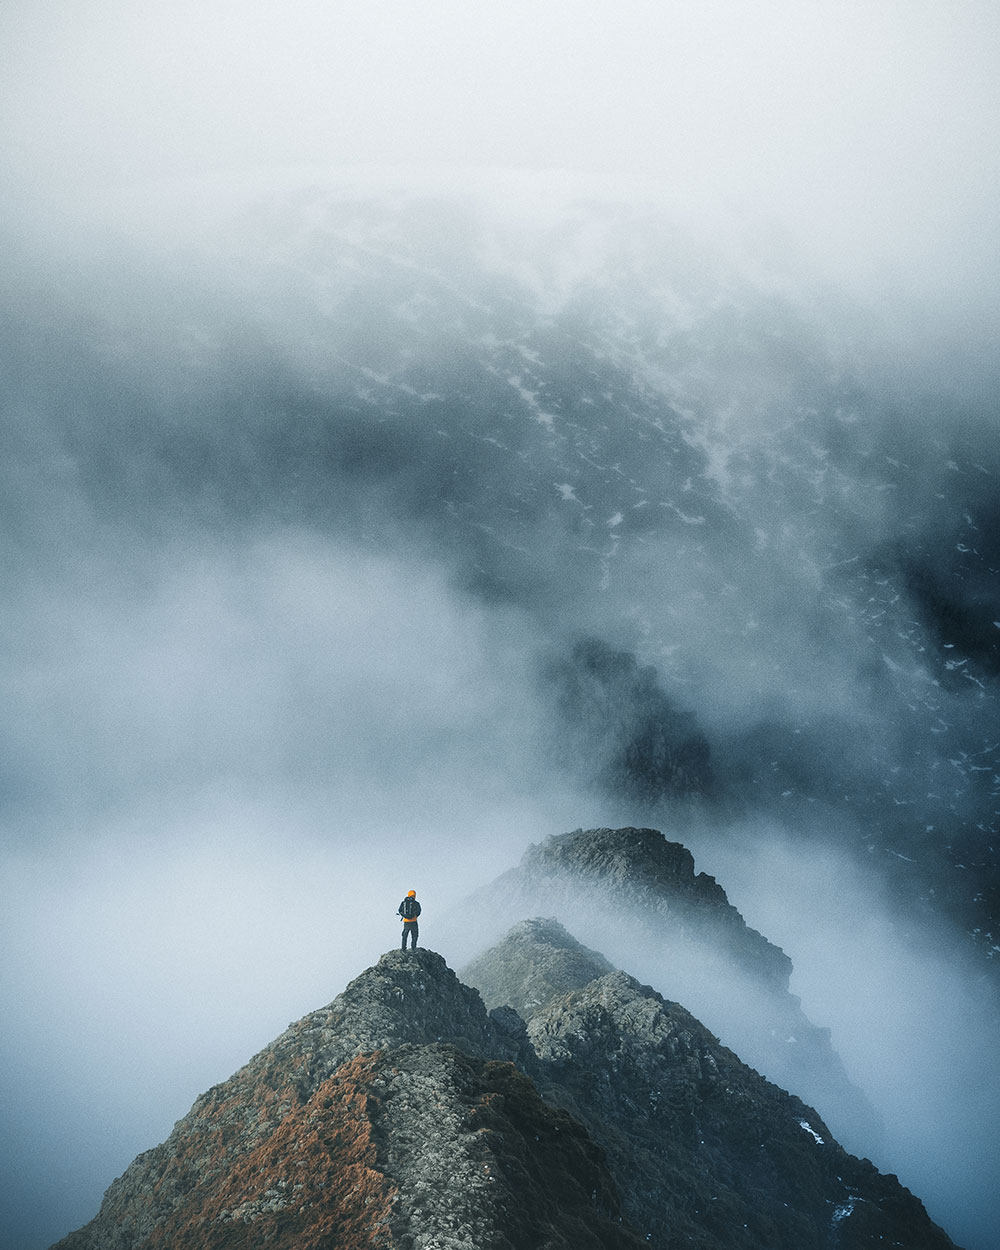 Ryan Lomas stands upon a rugged mountain peak surrounded by clouds